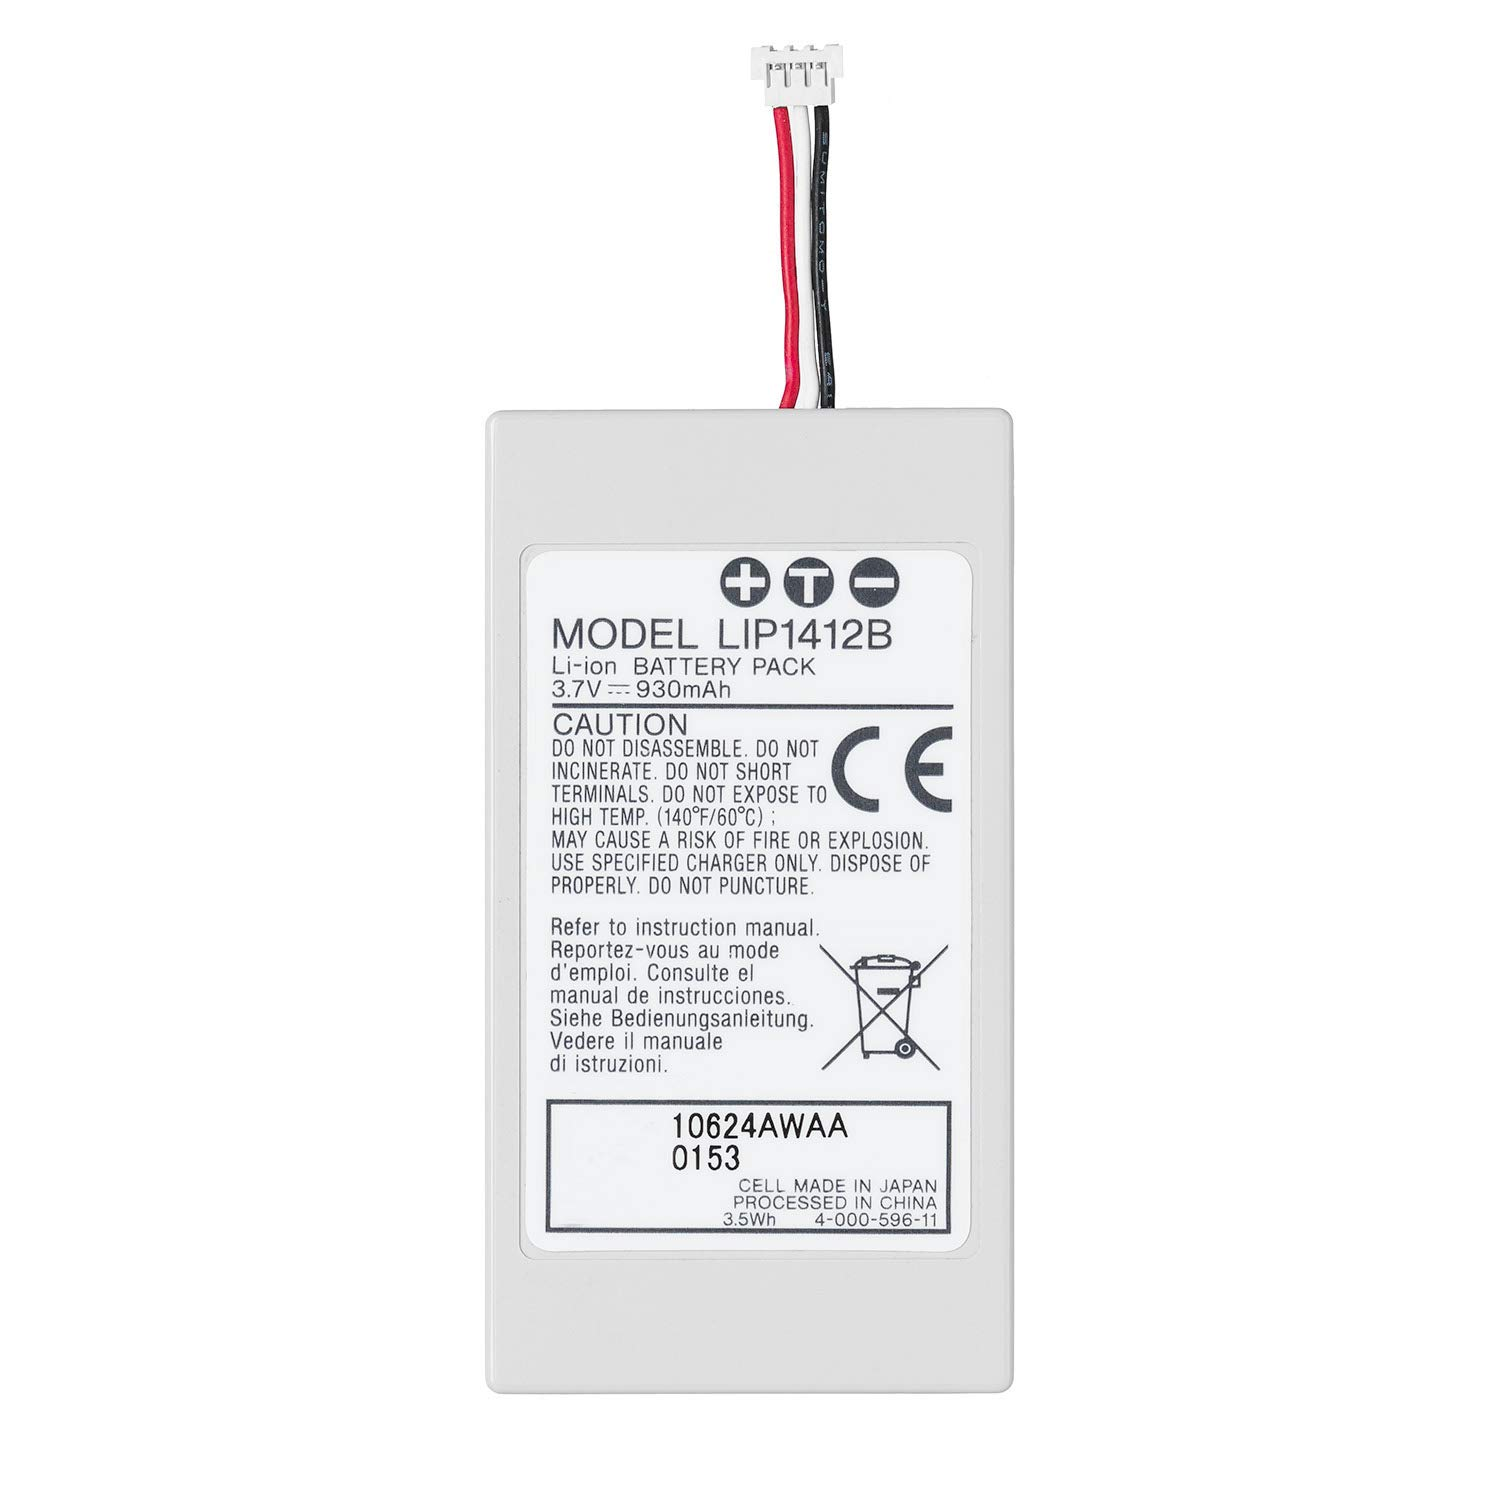 OSTENT 3.7V 930mAh Rechargeable Battery for Son Max 87% Bombing new work OFF Pack Replacement